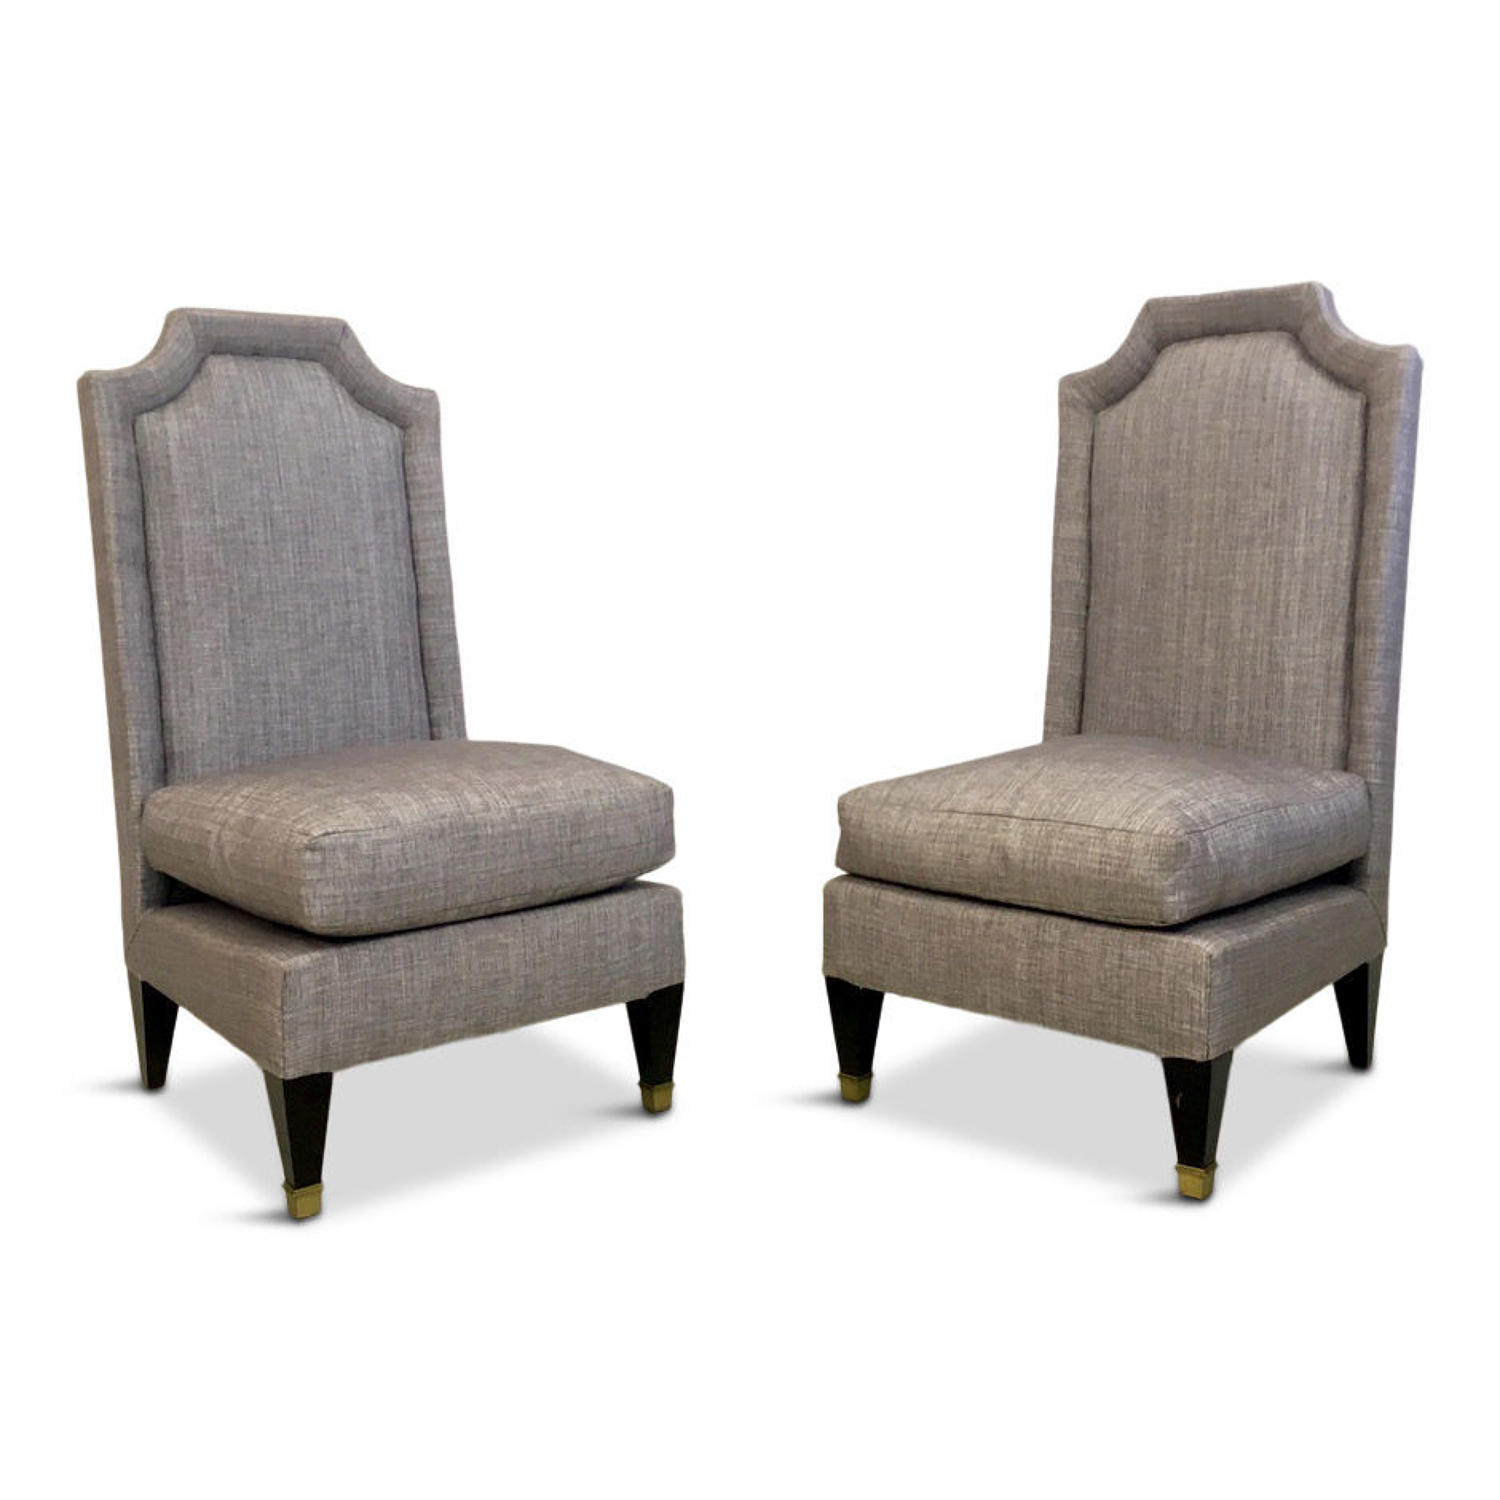 A pair of 1950s French hall chairs in the style of Jean Pascaud